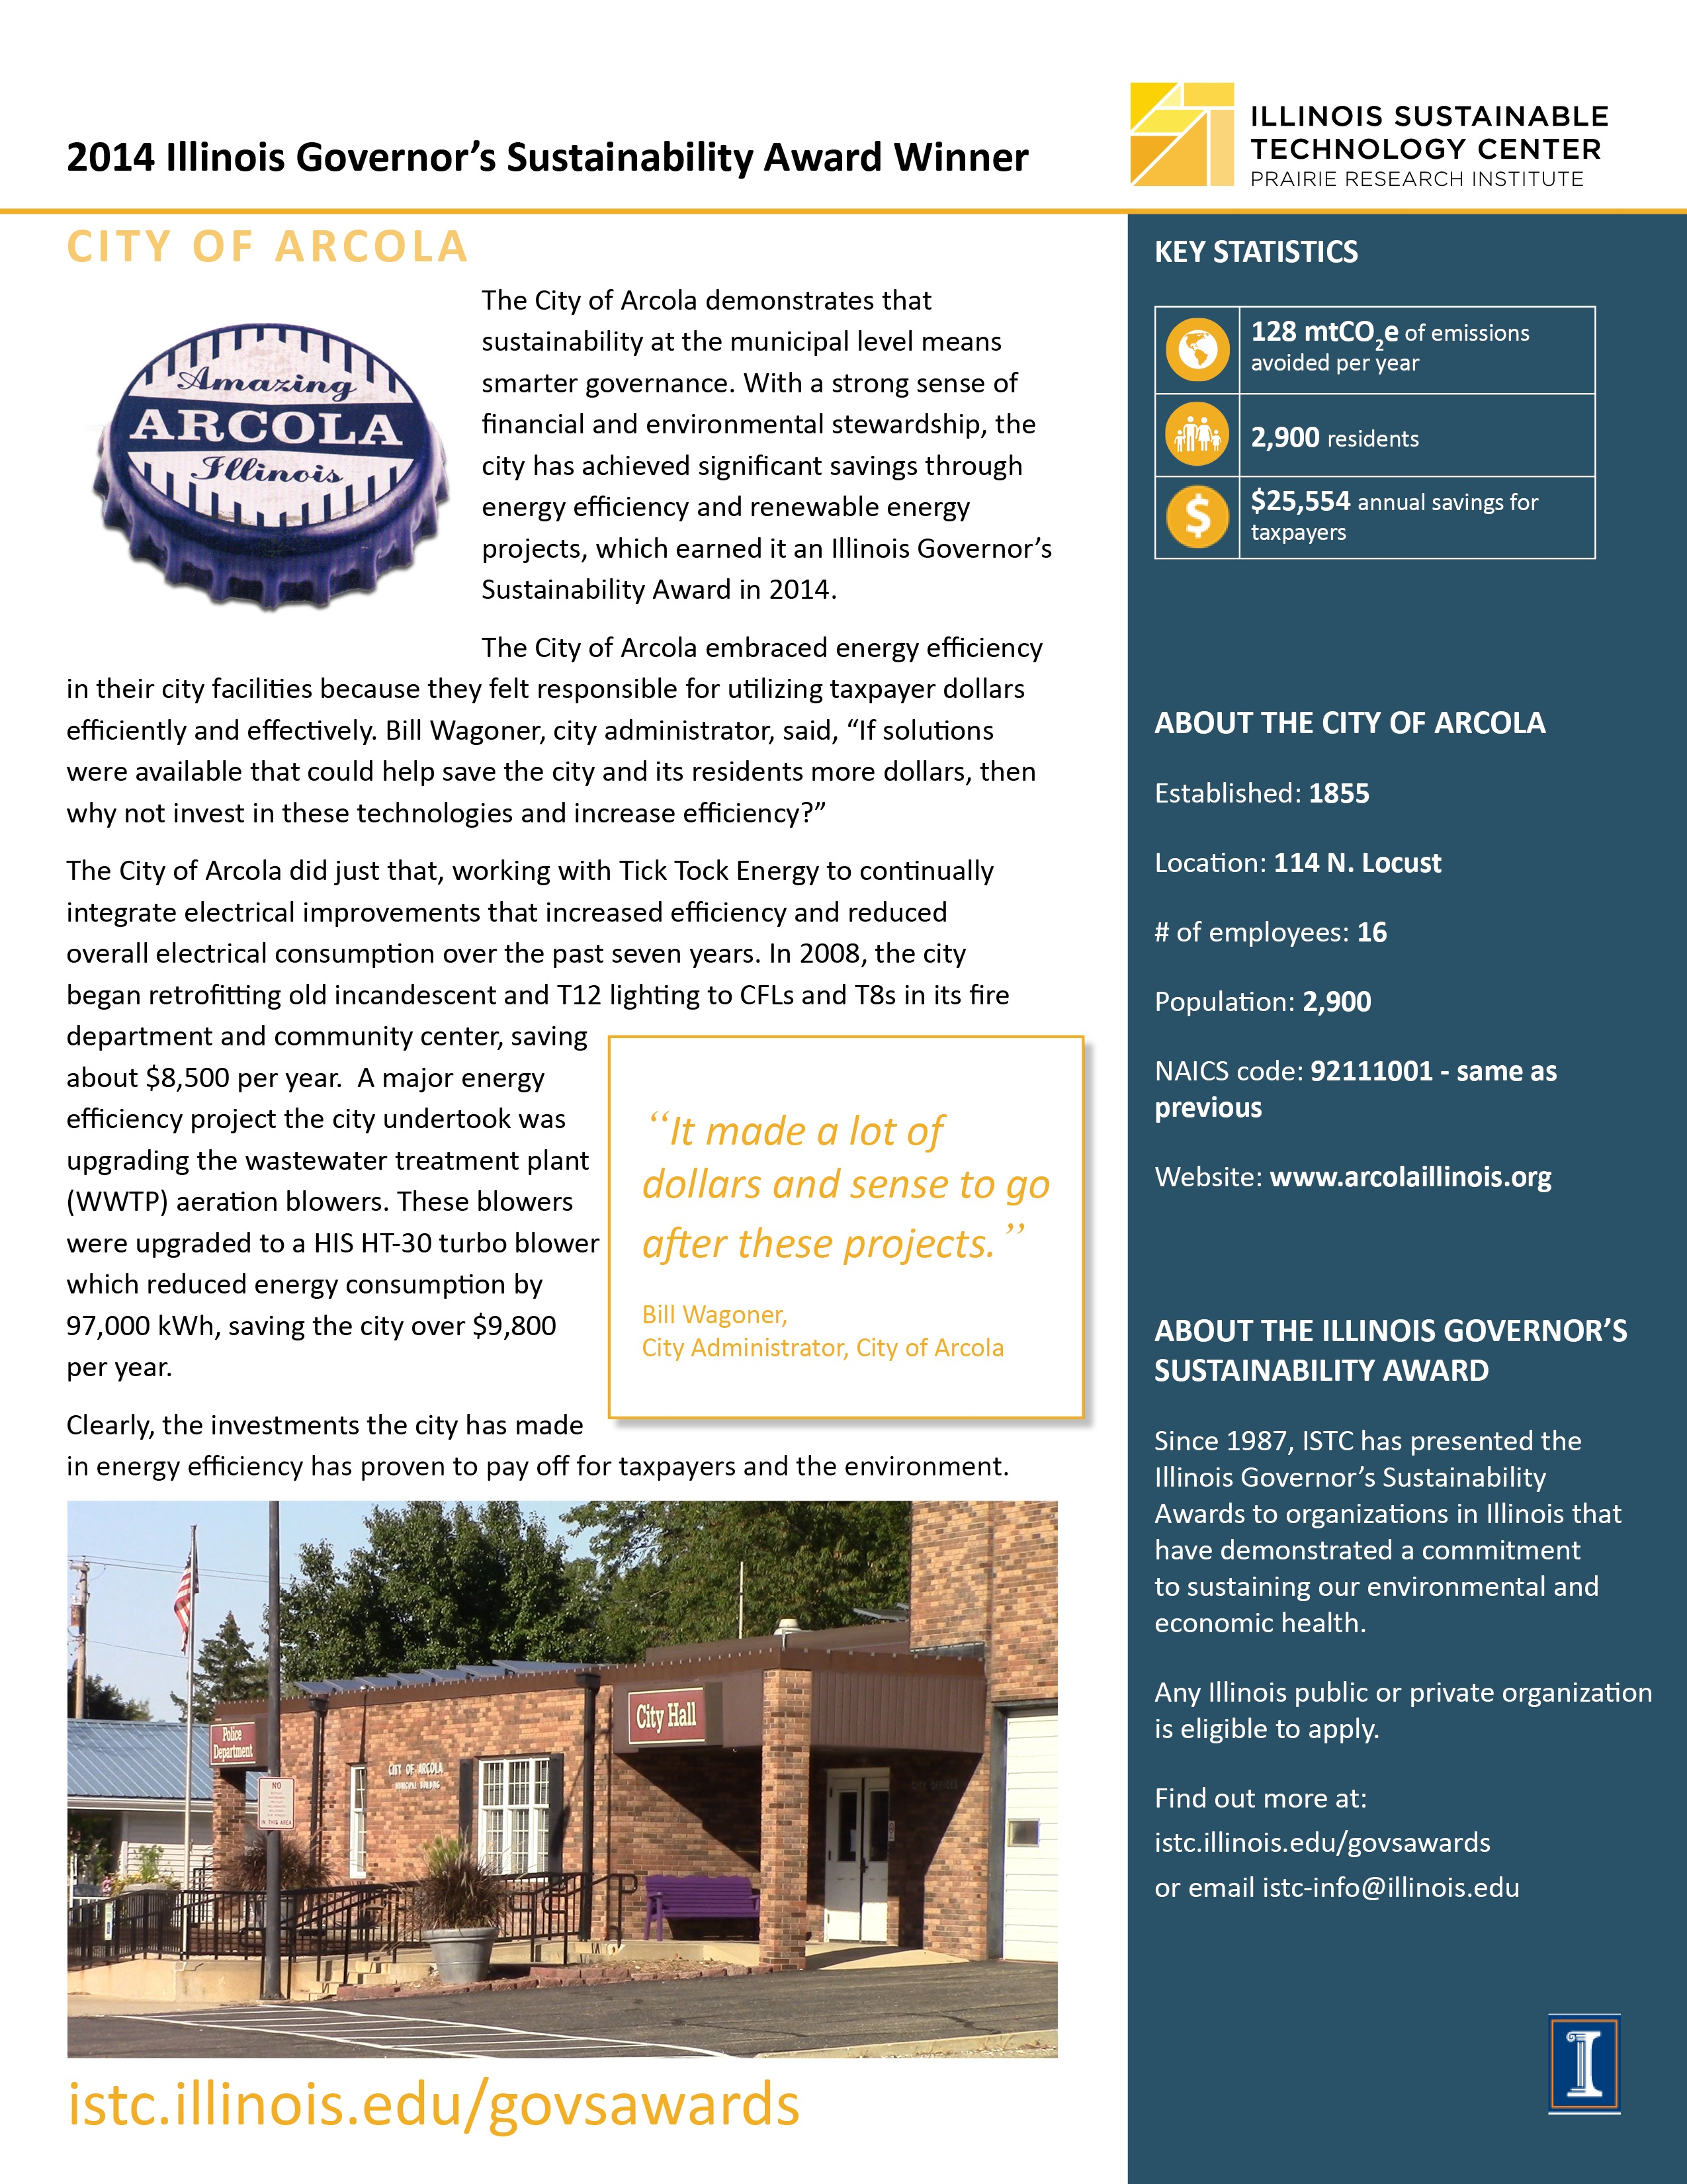 link to City of Arcola case study